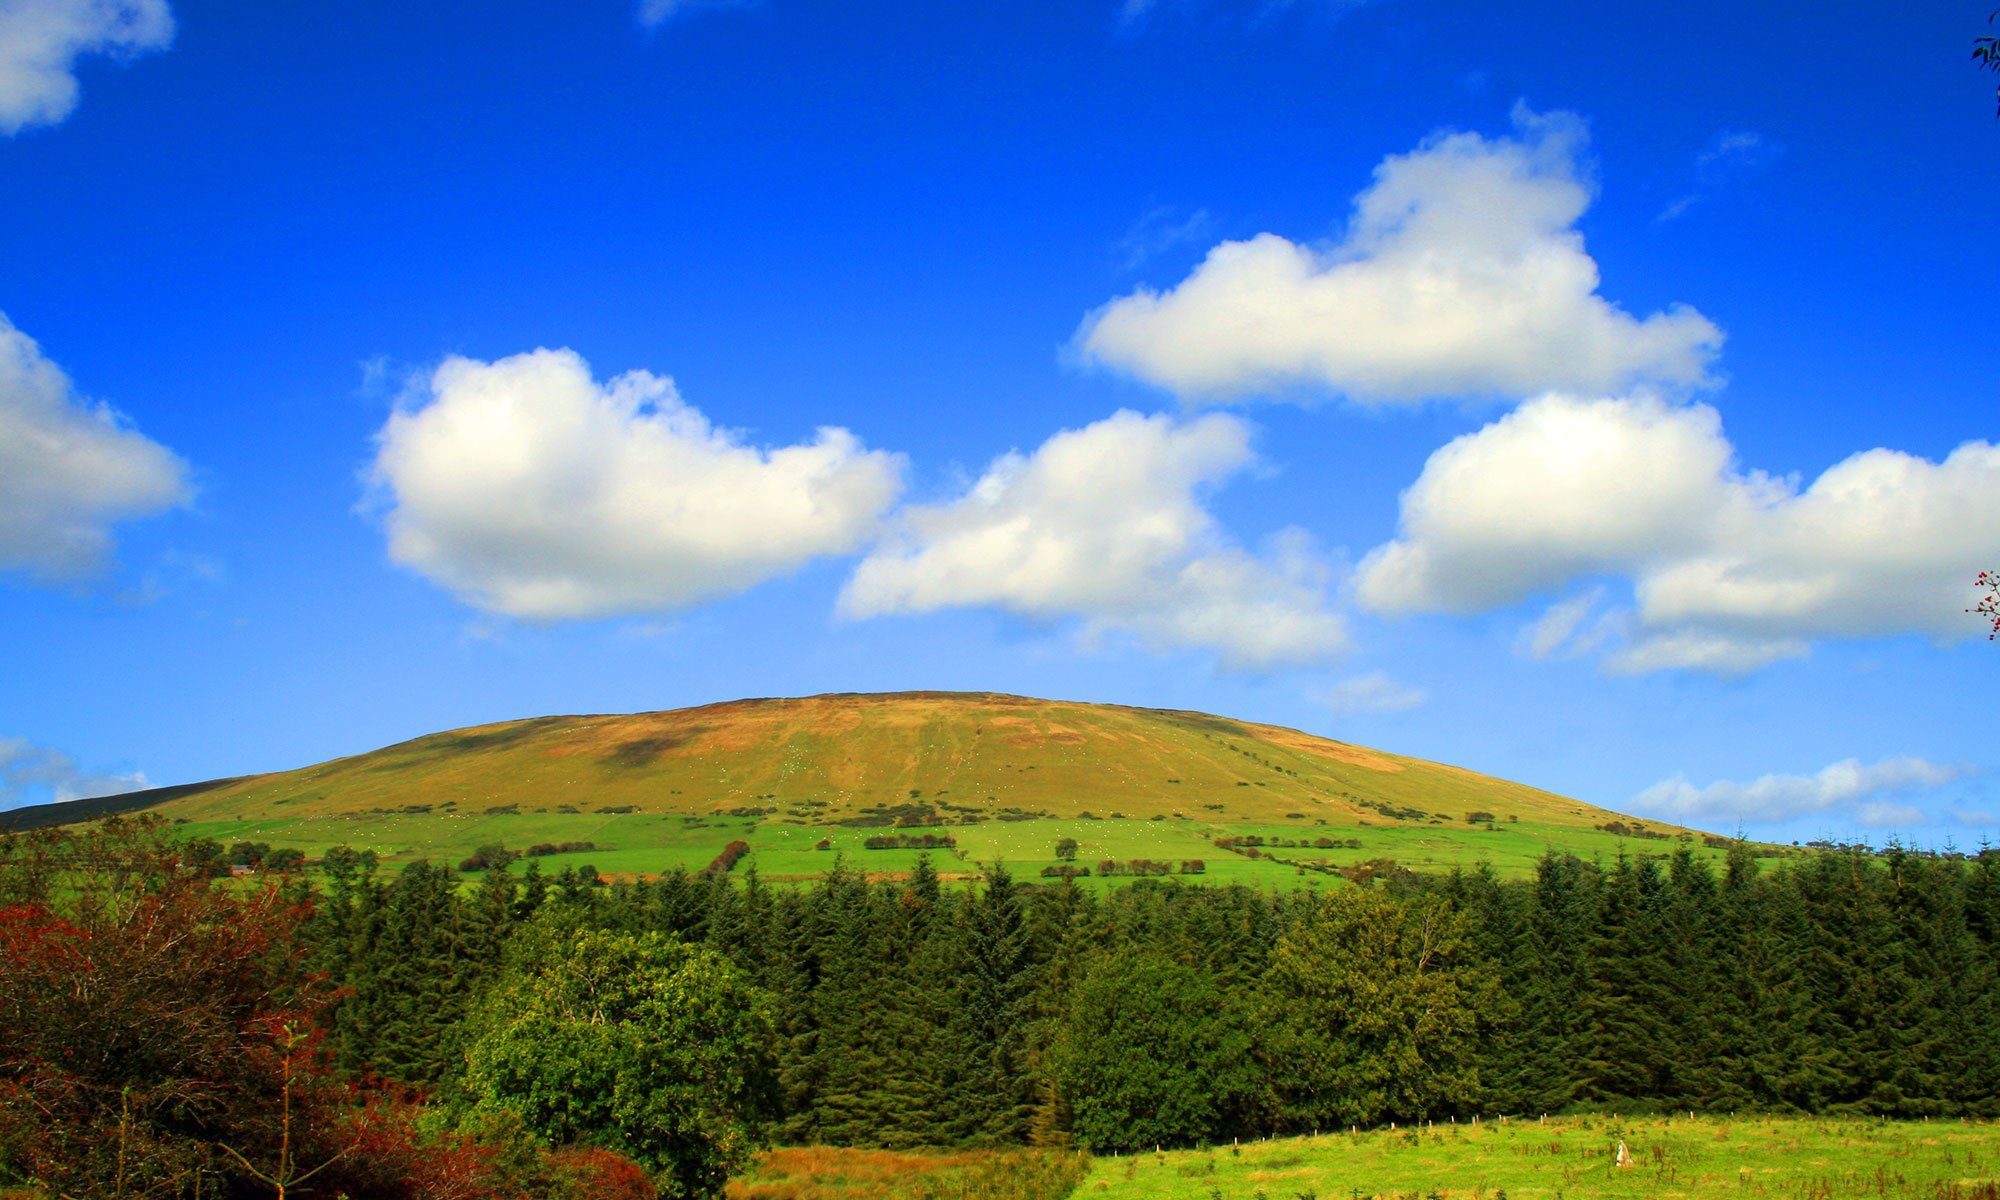 Landscape scale view of Knocklayd, in County Antrim